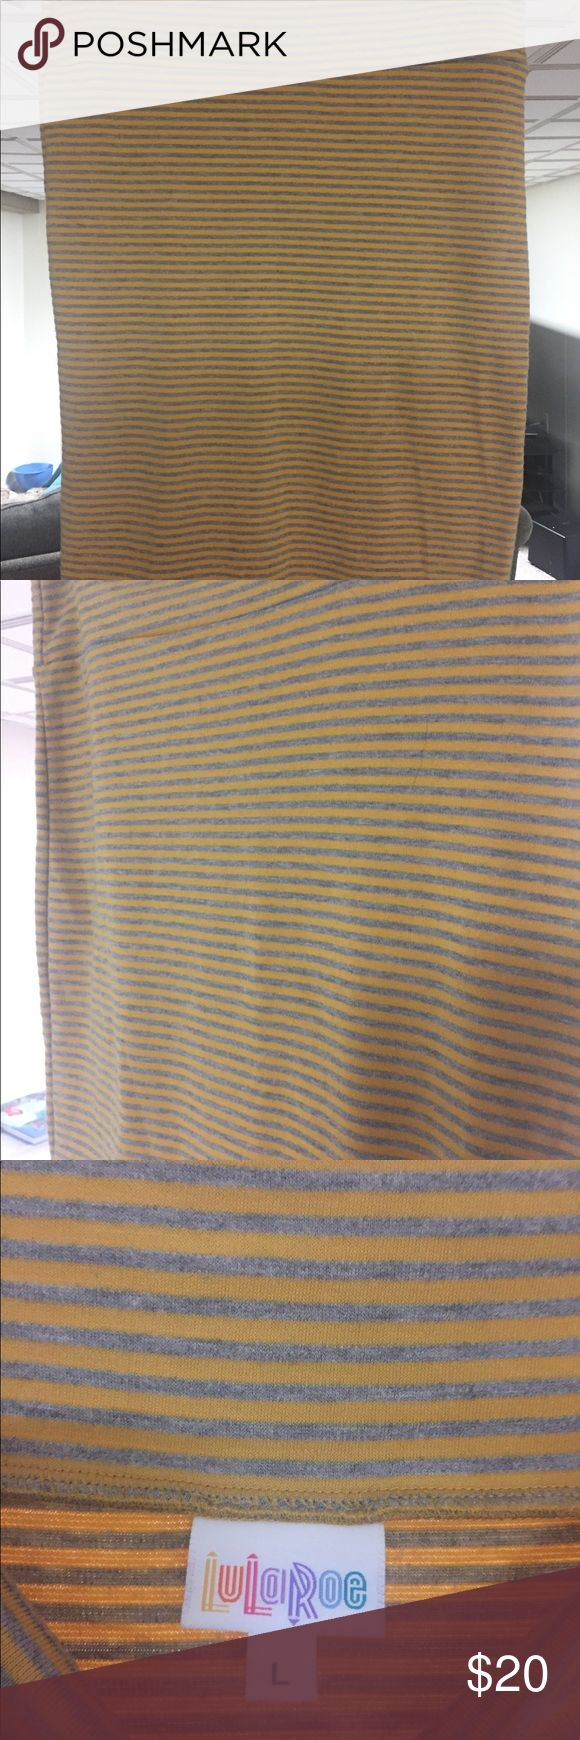 Yellow and Gray striped LLR Cassie Skirt Never worn but no tags. Perfect condition. LuLaRoe Skirts Pencil